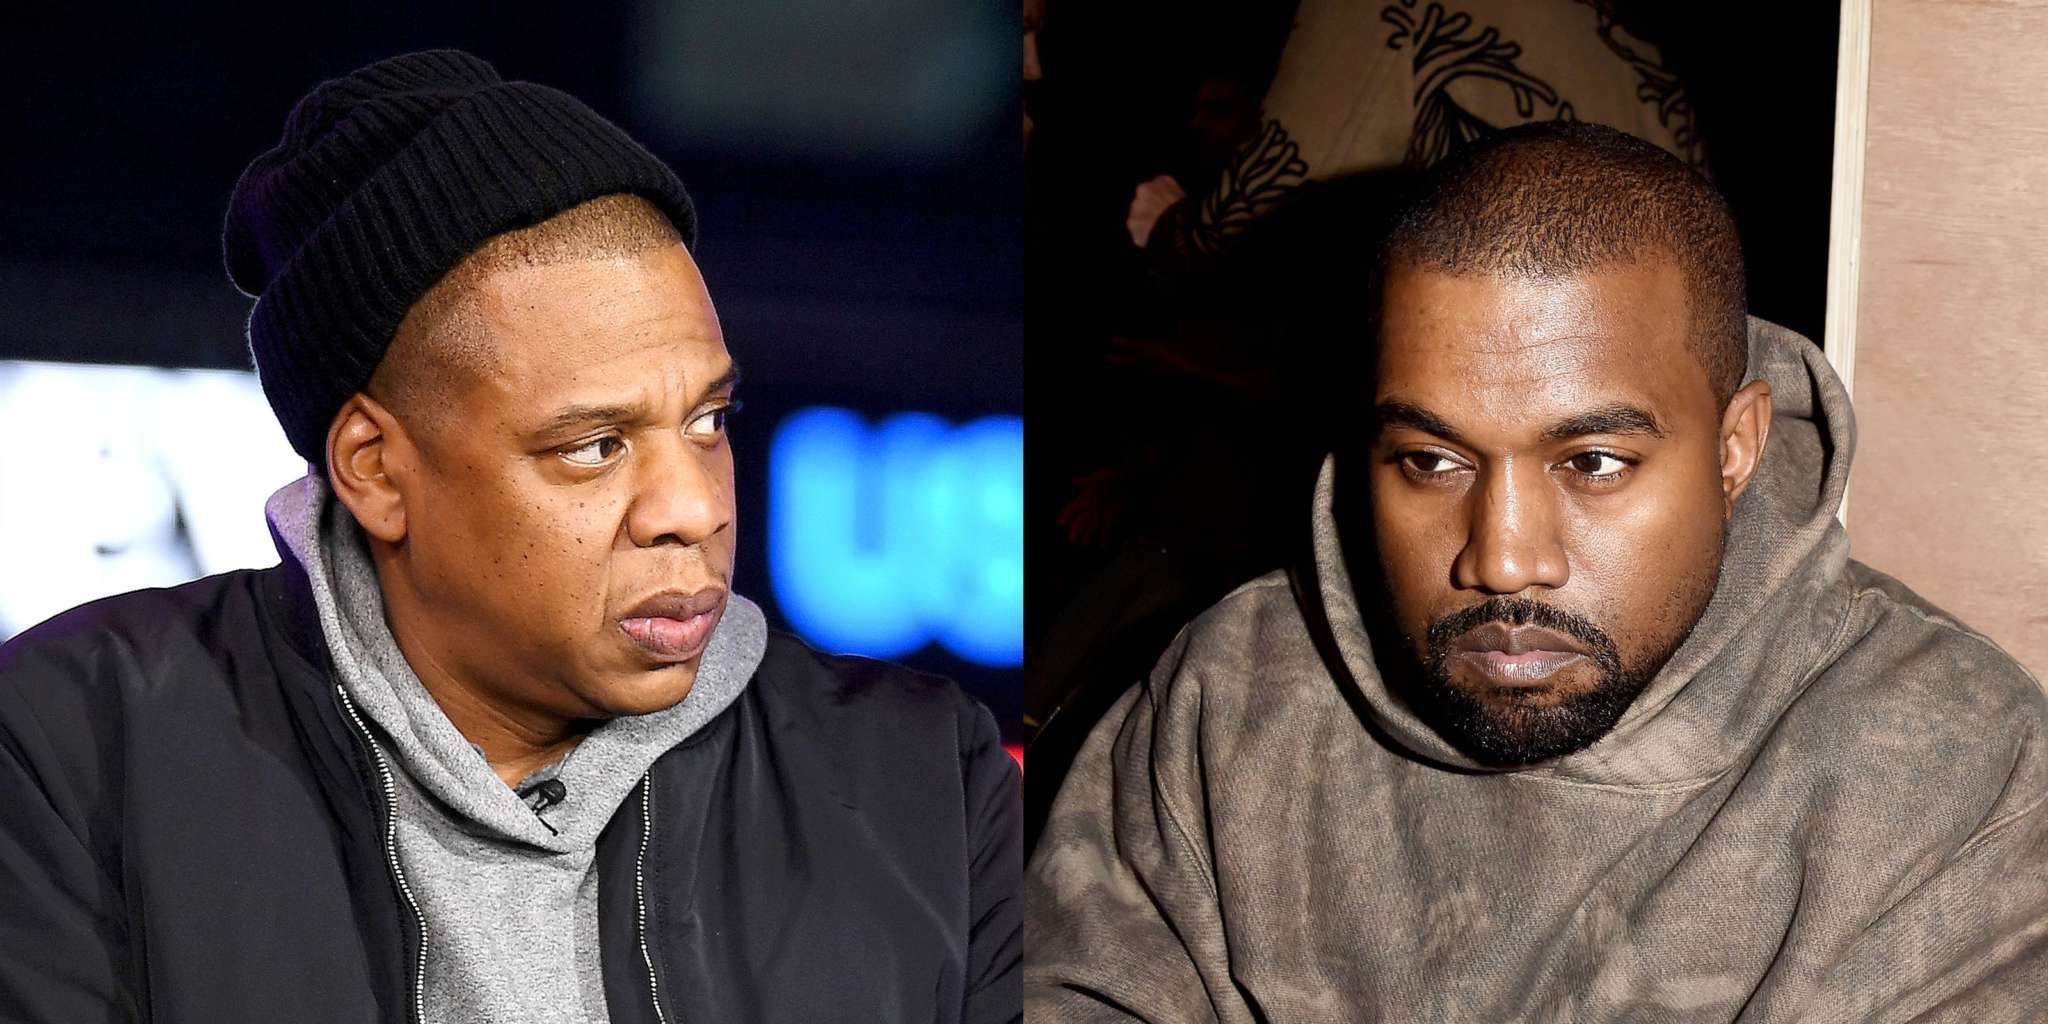 Jay Z Talks About Current Relationship With Kanye West He Knows He Crossed The Line Jay Z Khloe Kardashian Kanye West